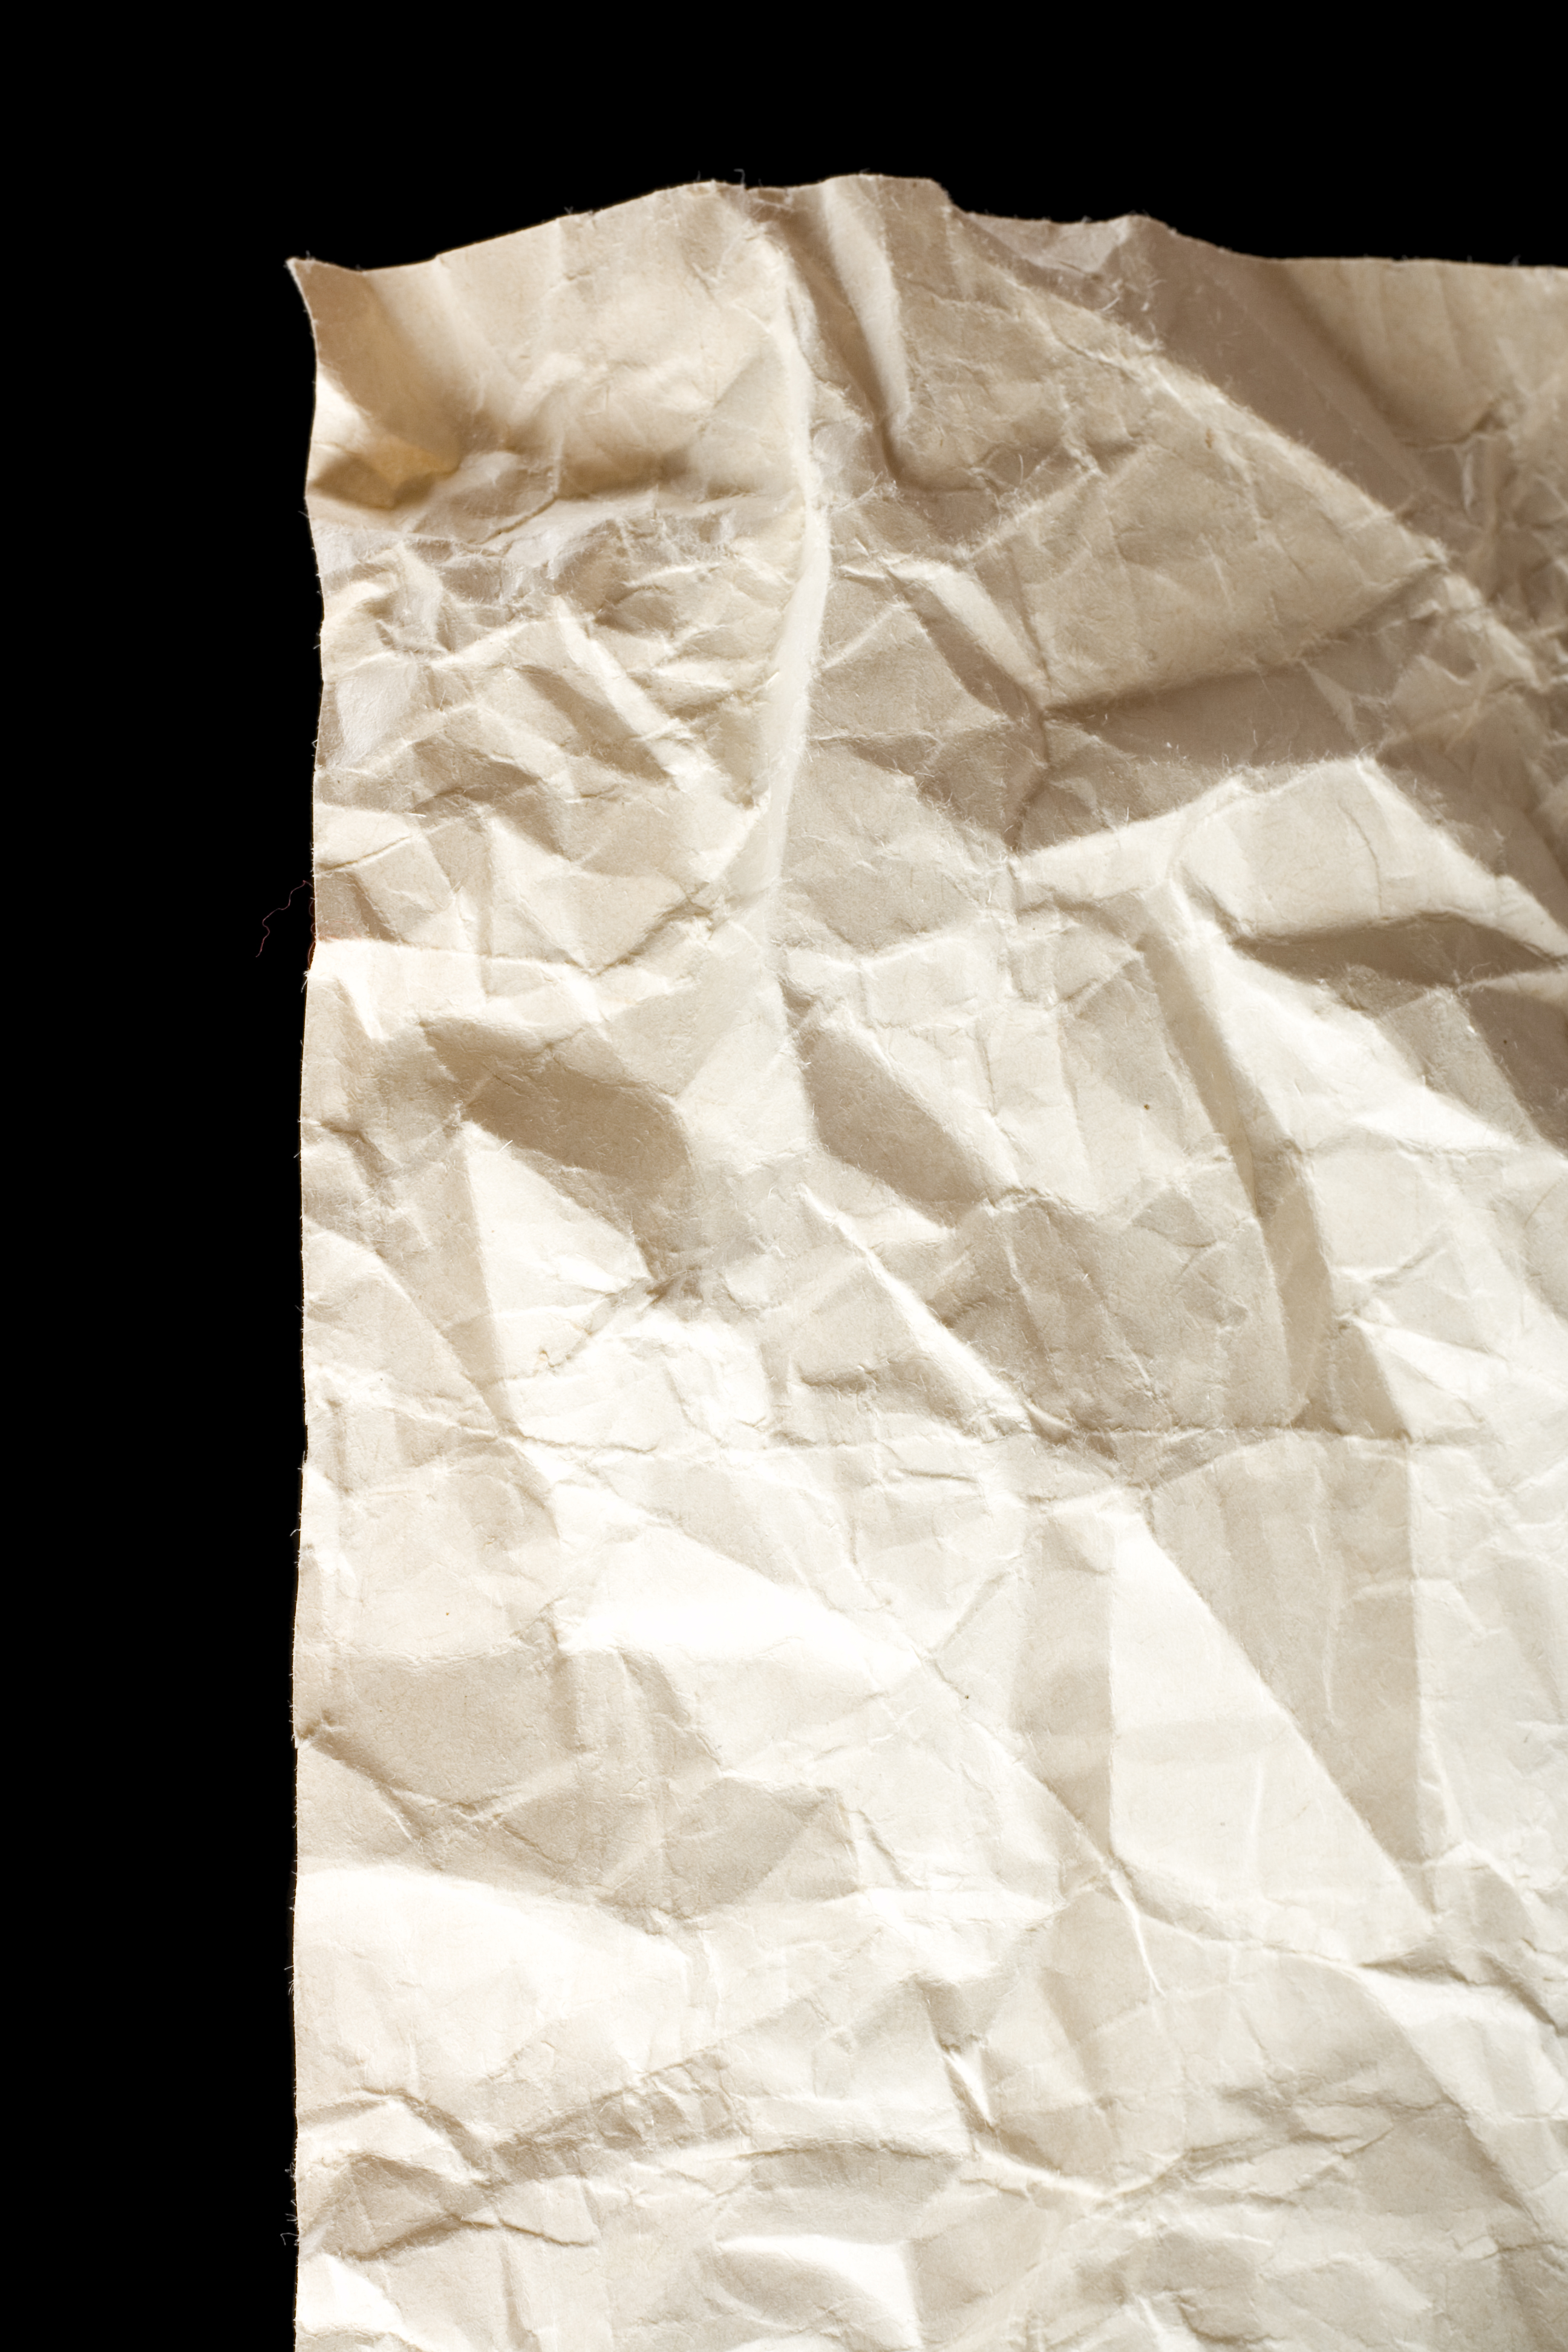 crumpled paper, Backgrounds, Obsolete, Wrapping, White, HQ Photo